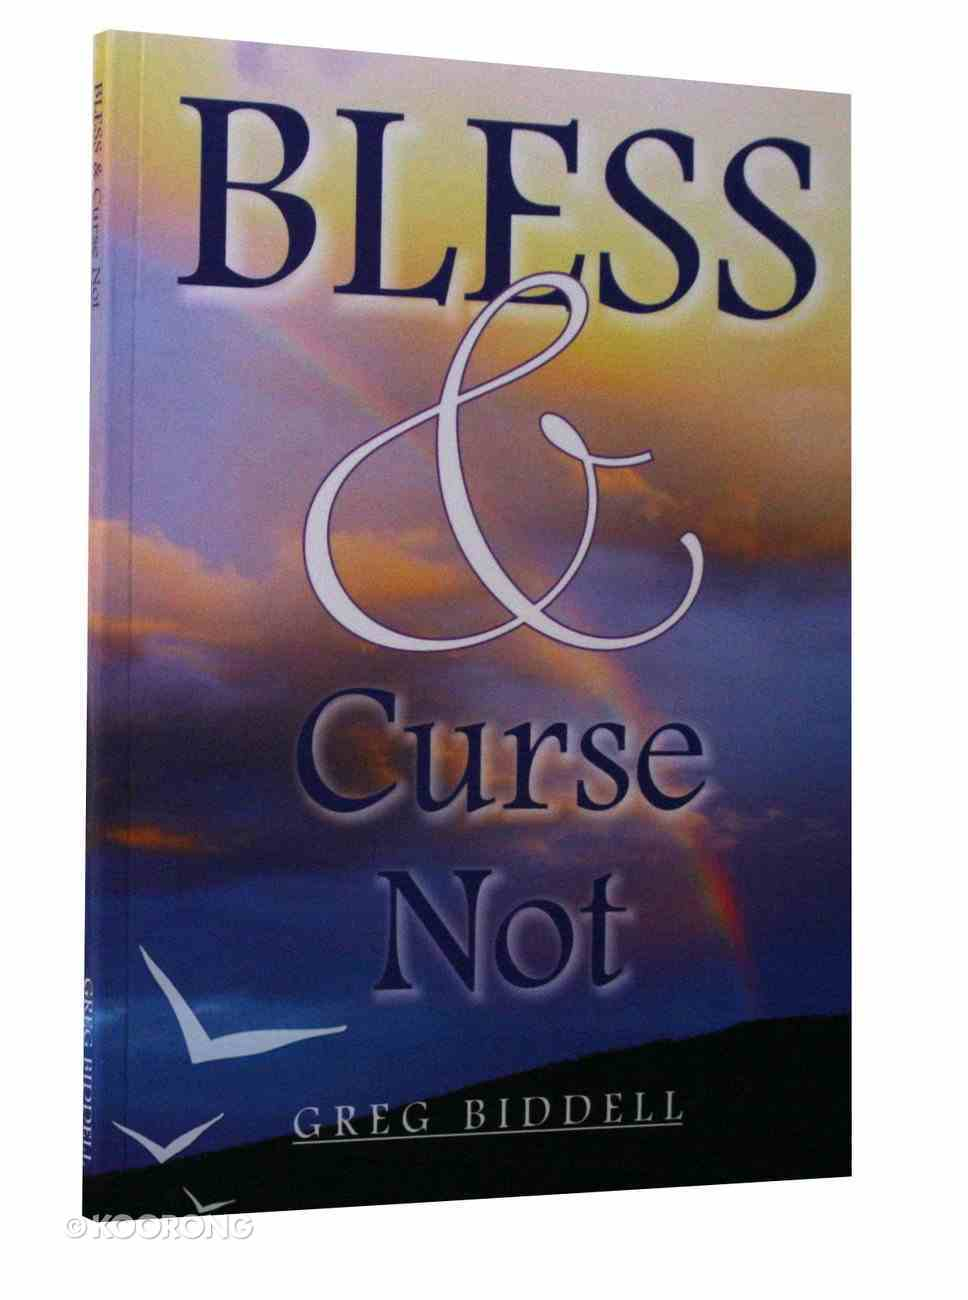 Bless and Curse Not Paperback